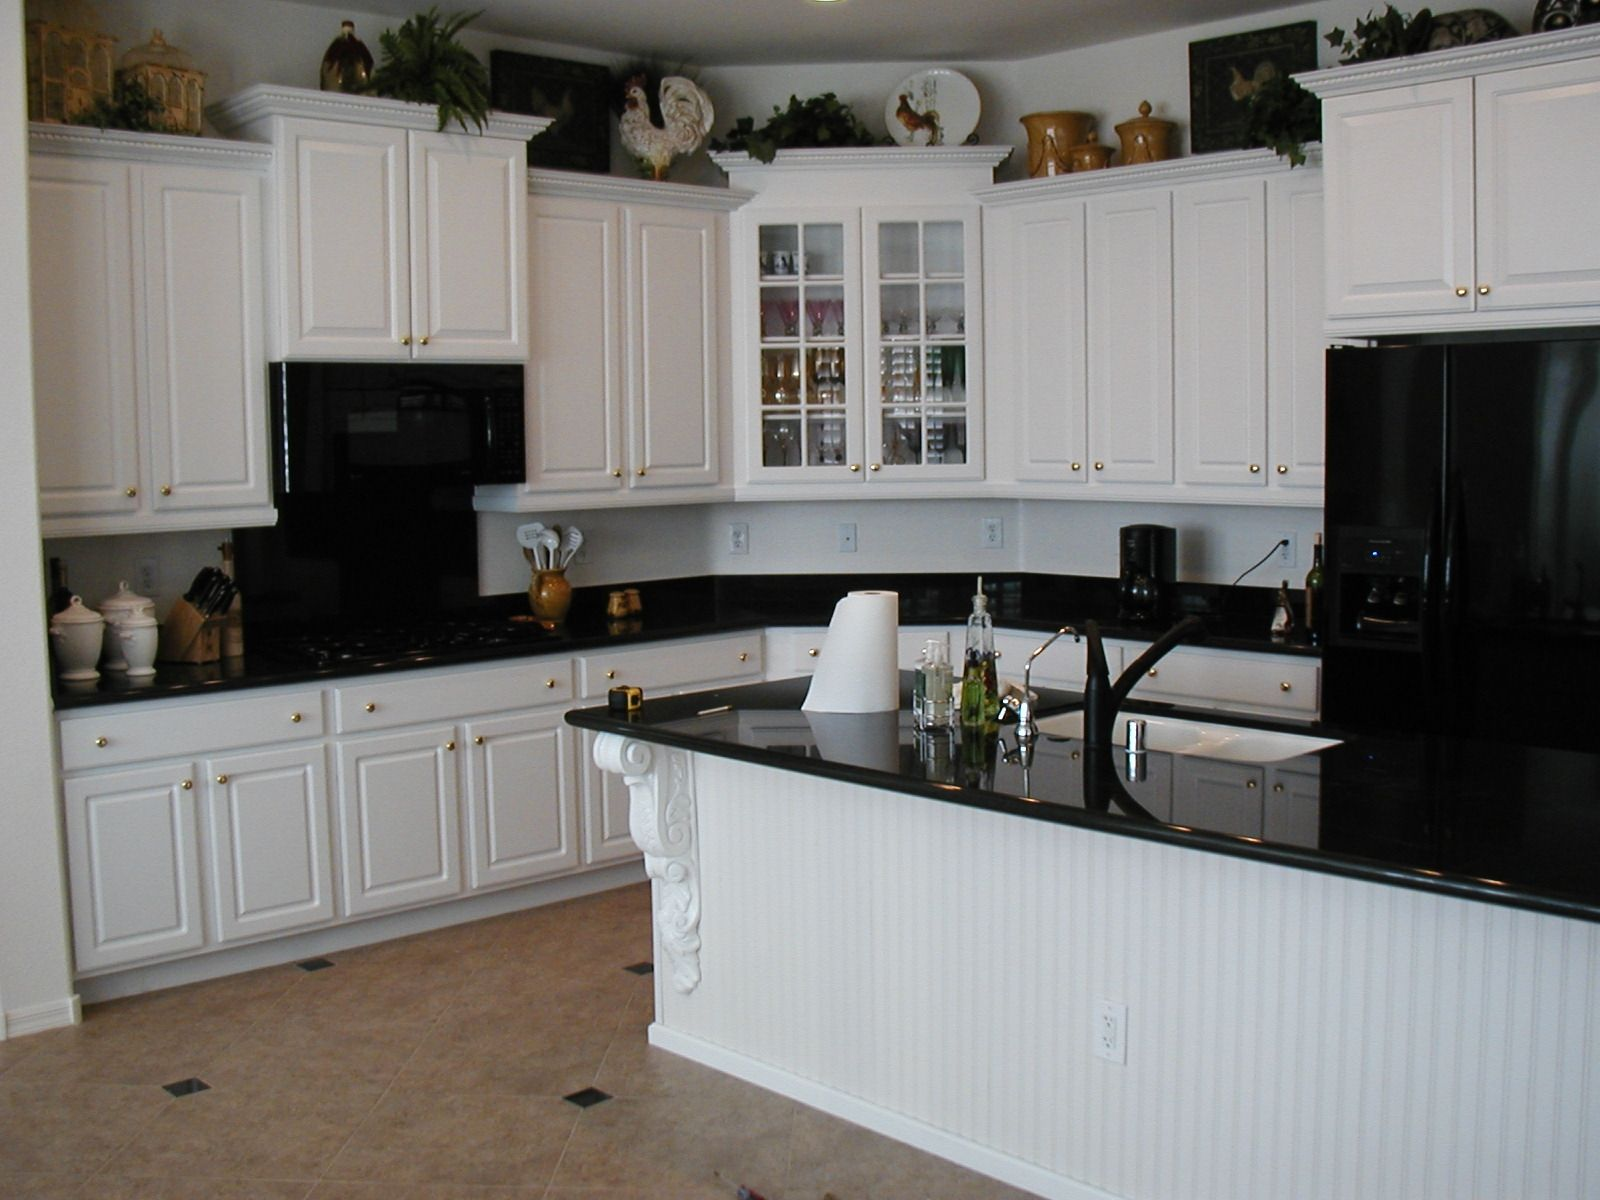 Creamy White Kitchen Cabinets With Black Appliances Are White